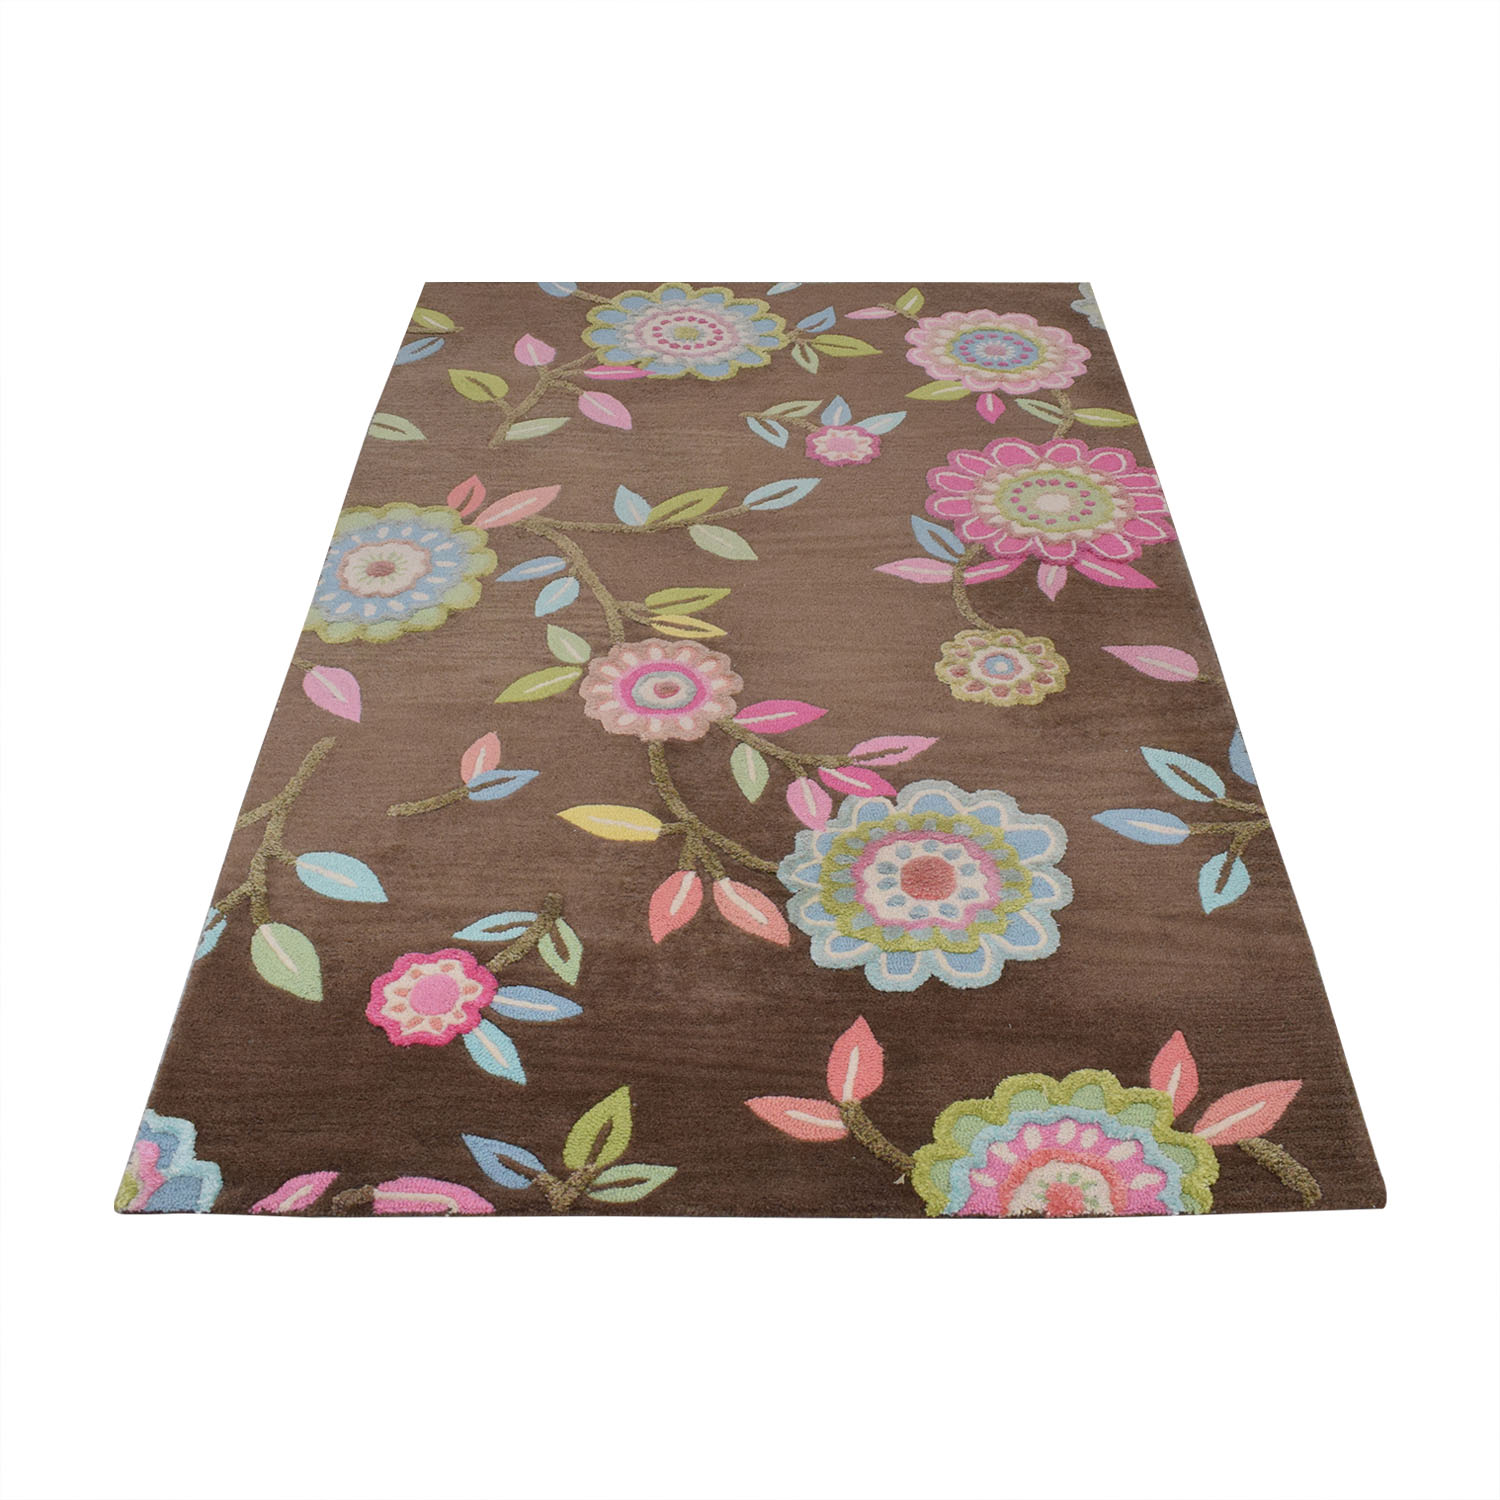 Pottery Barn Kids Pottery Barn Teen Floral Area Rug second hand